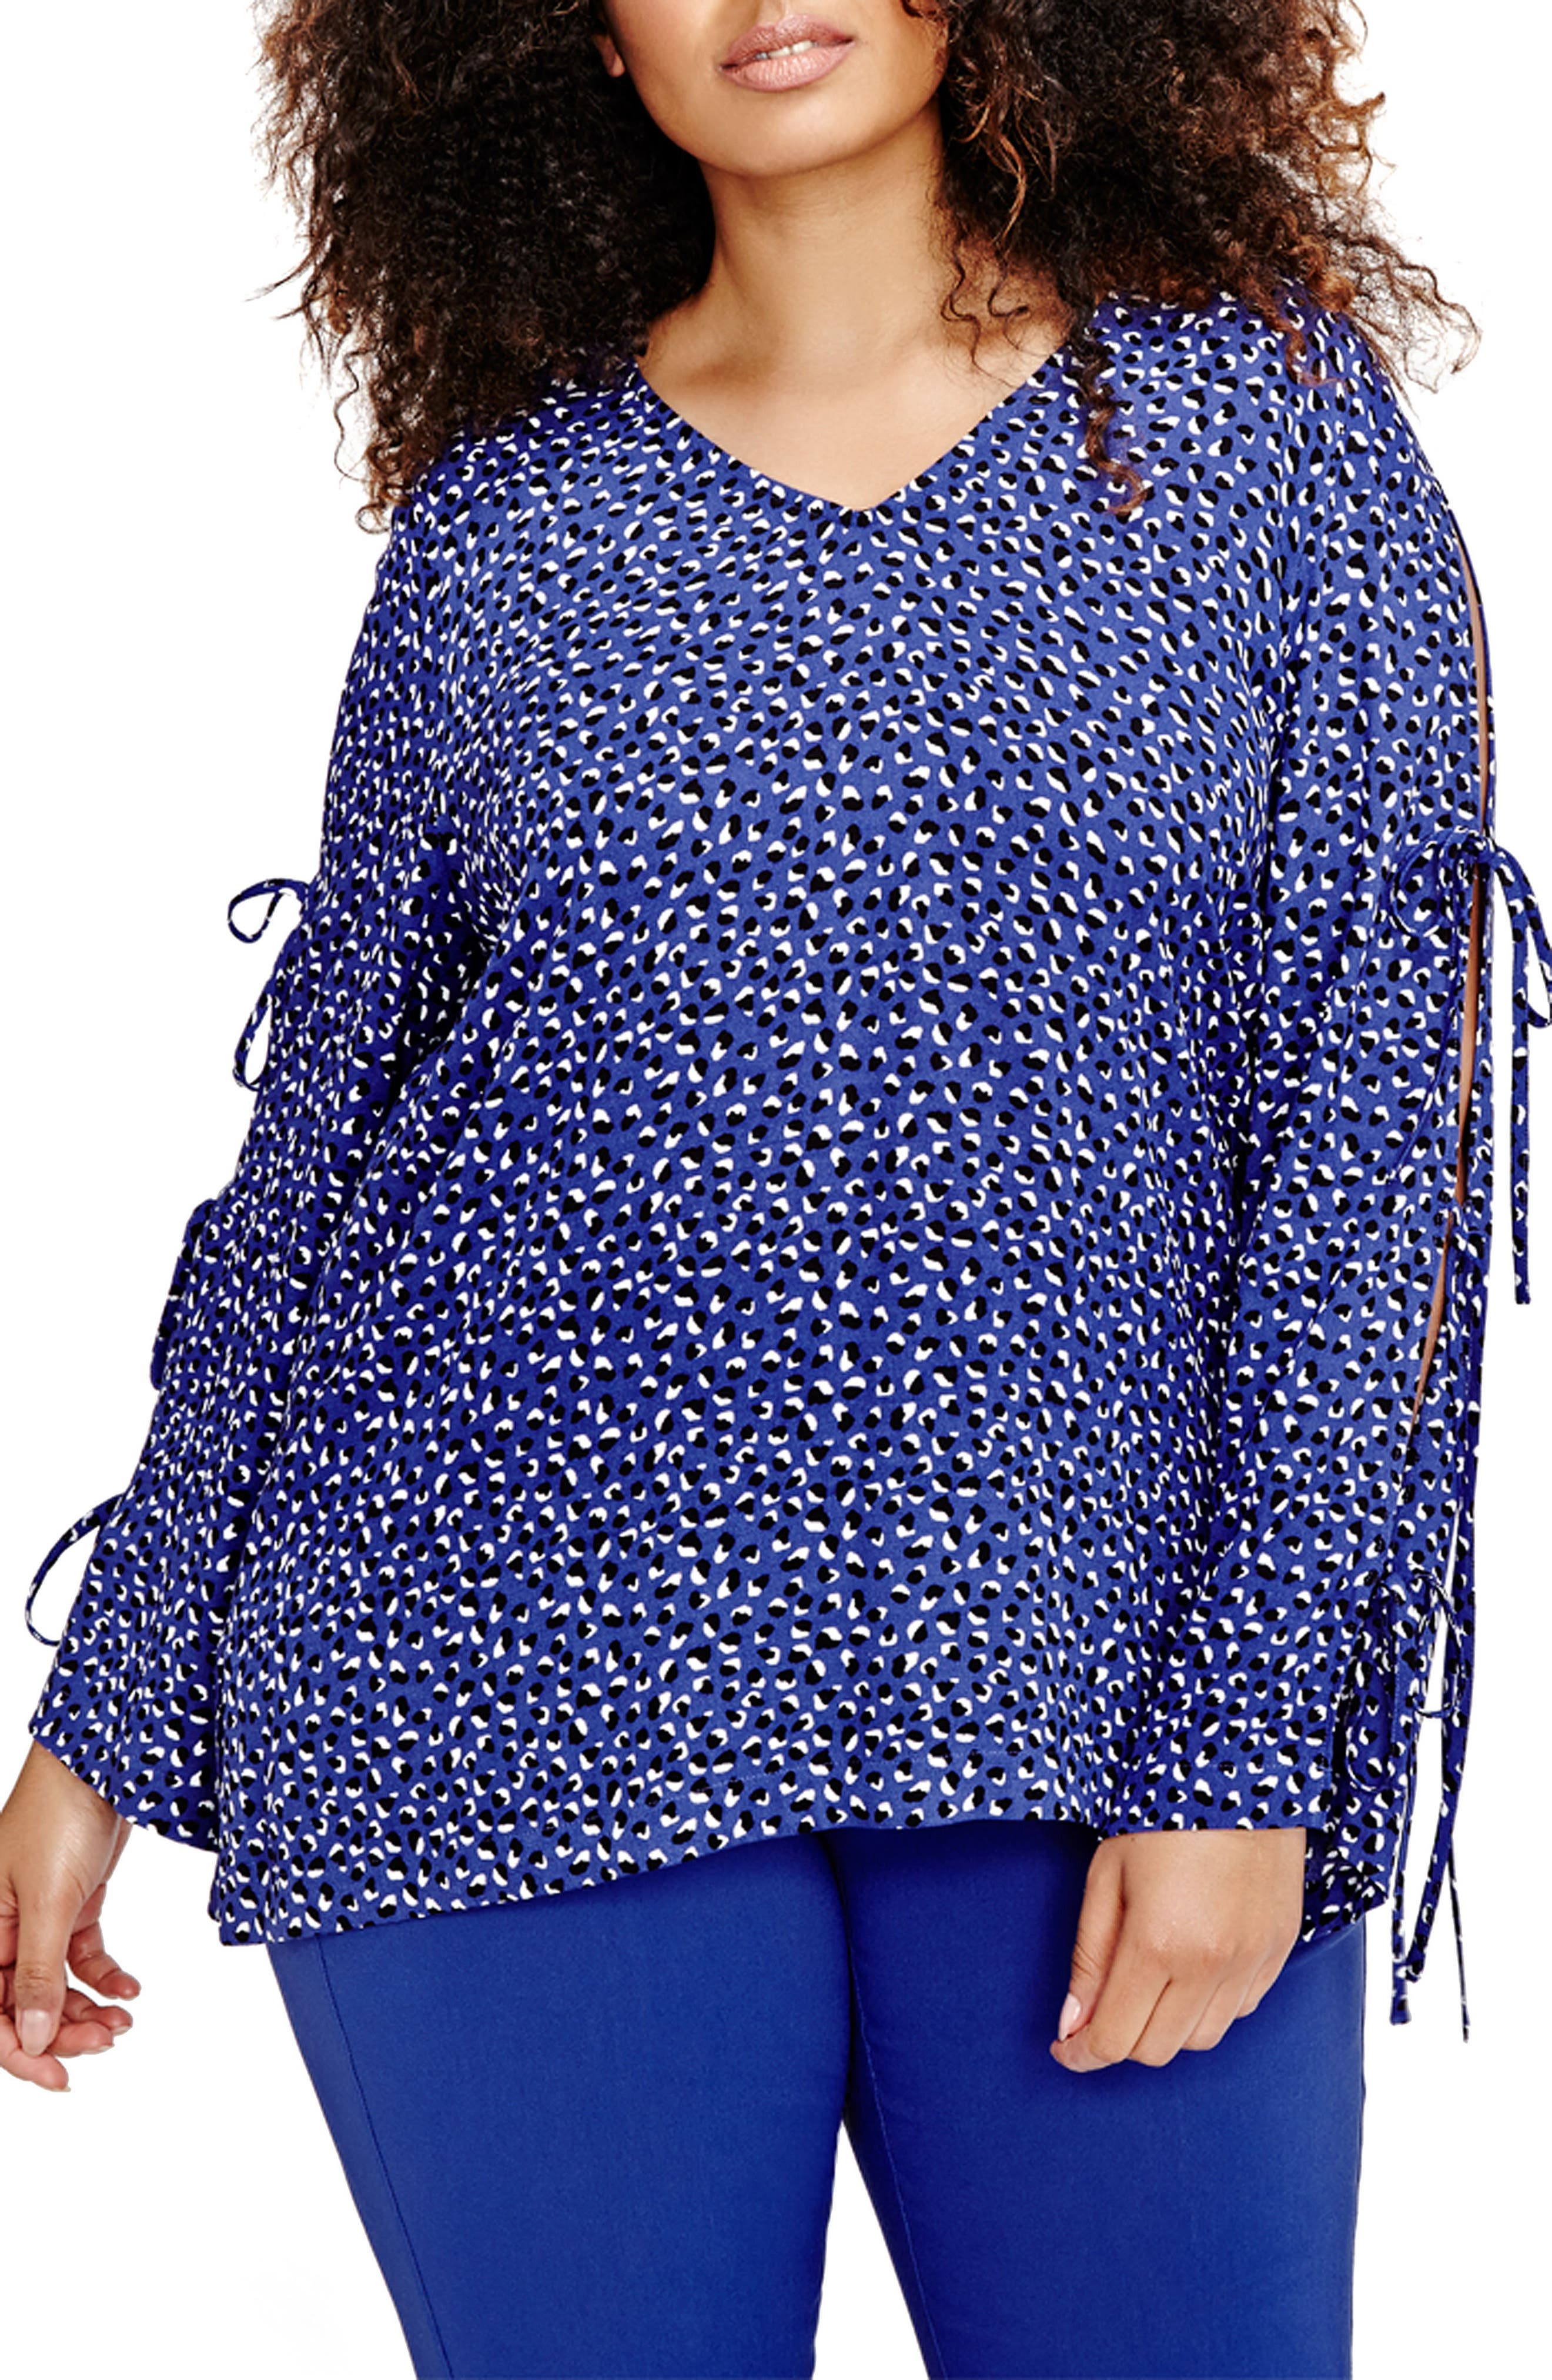 Alternate Image 1 Selected - MICHEL STUDIO Tie Sleeve Cold Shoulder Blouse (Plus Size)